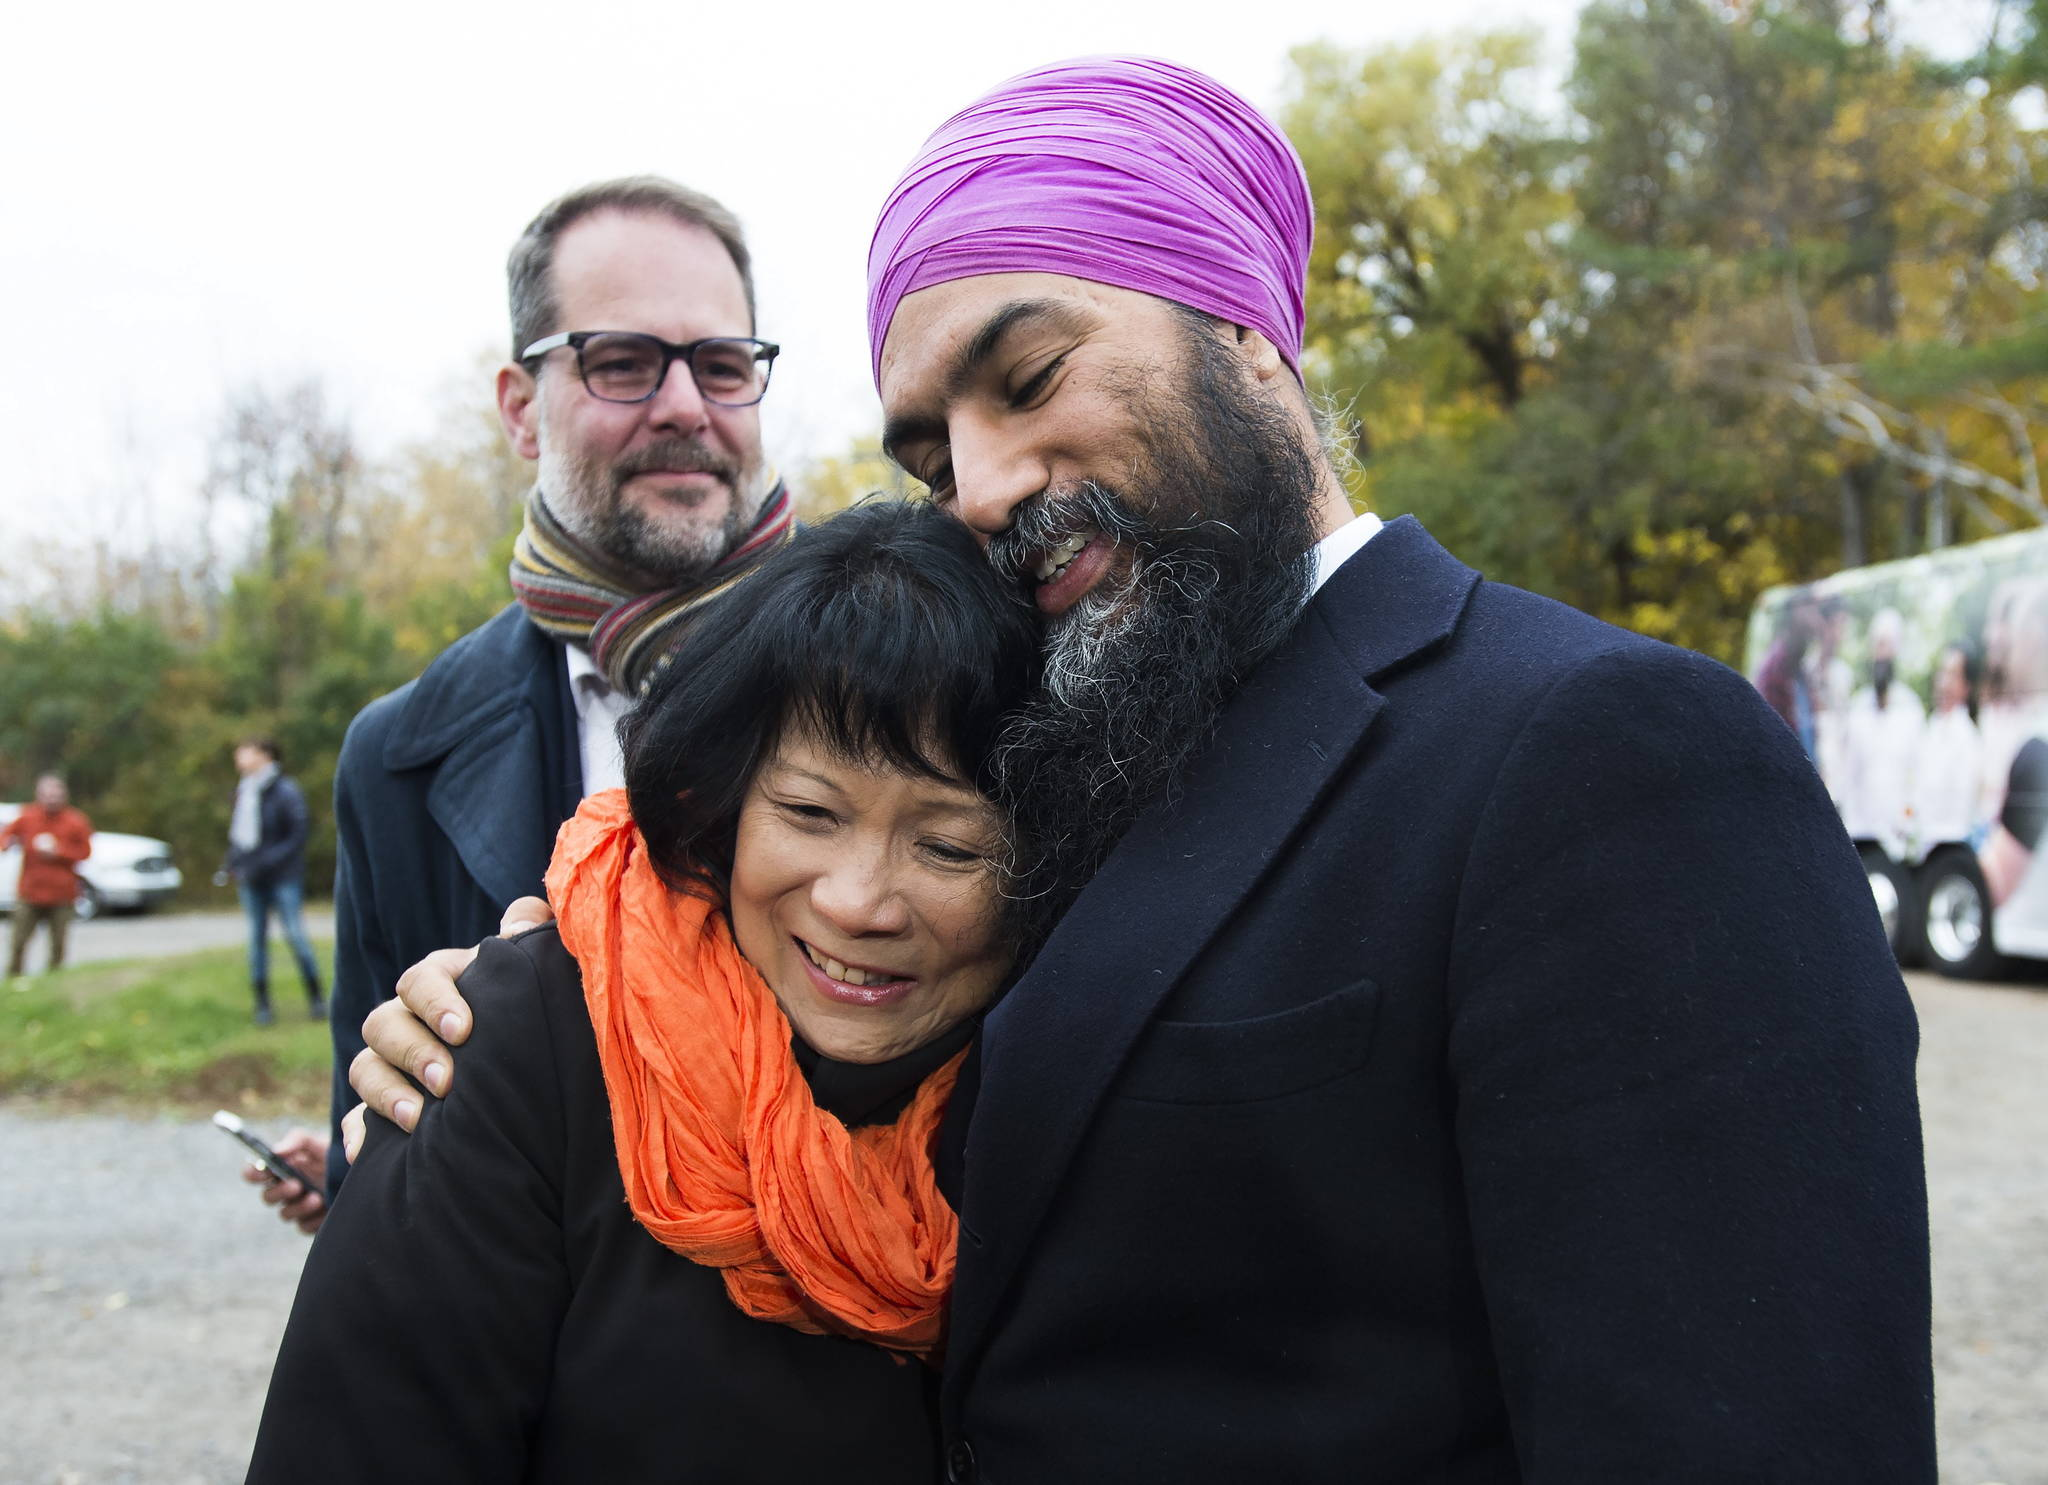 NDP leader Jagmeet Singh, hugs Olivia Chow, widow of former NDP leader Jack Layton as they make an announcement at Jack Layton Park during a campaign stop in Hudson, Que., on Wednesday, October 16, 2019. THE CANADIAN PRESS/Nathan Denette